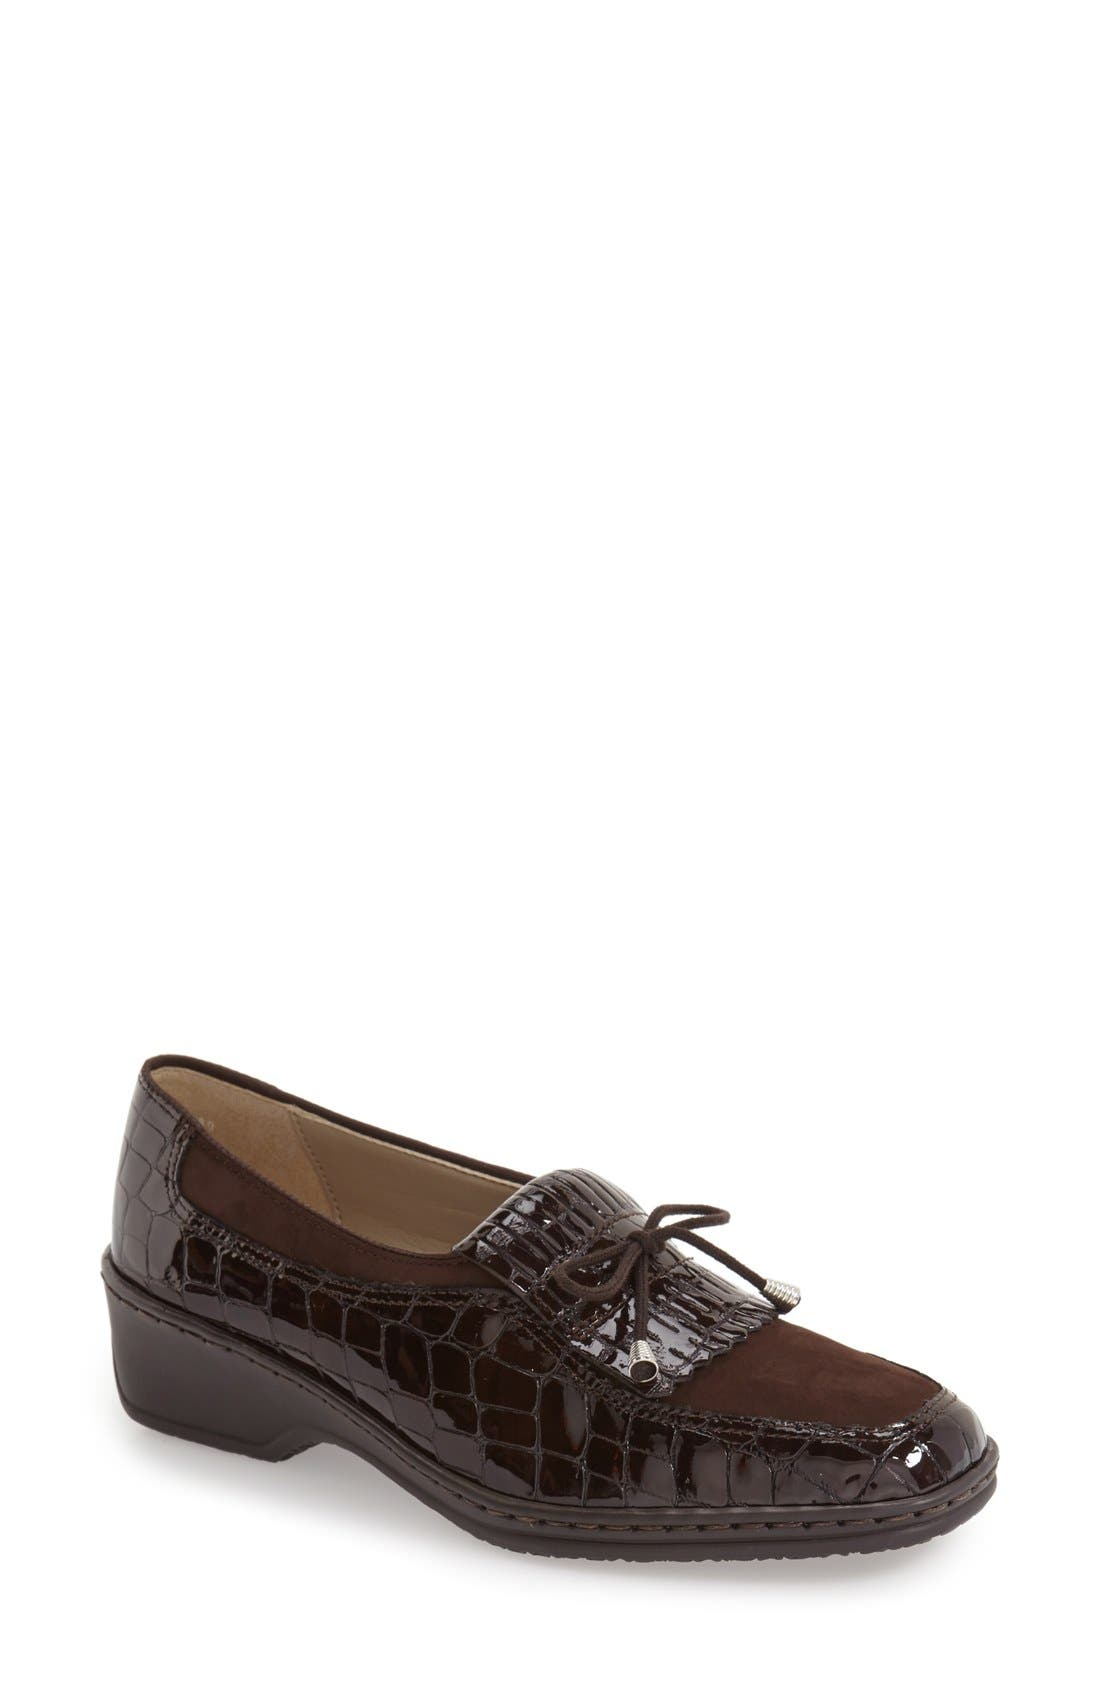 'Rachel' Loafer,                             Main thumbnail 1, color,                             BROWN NUBUCK LEATHER